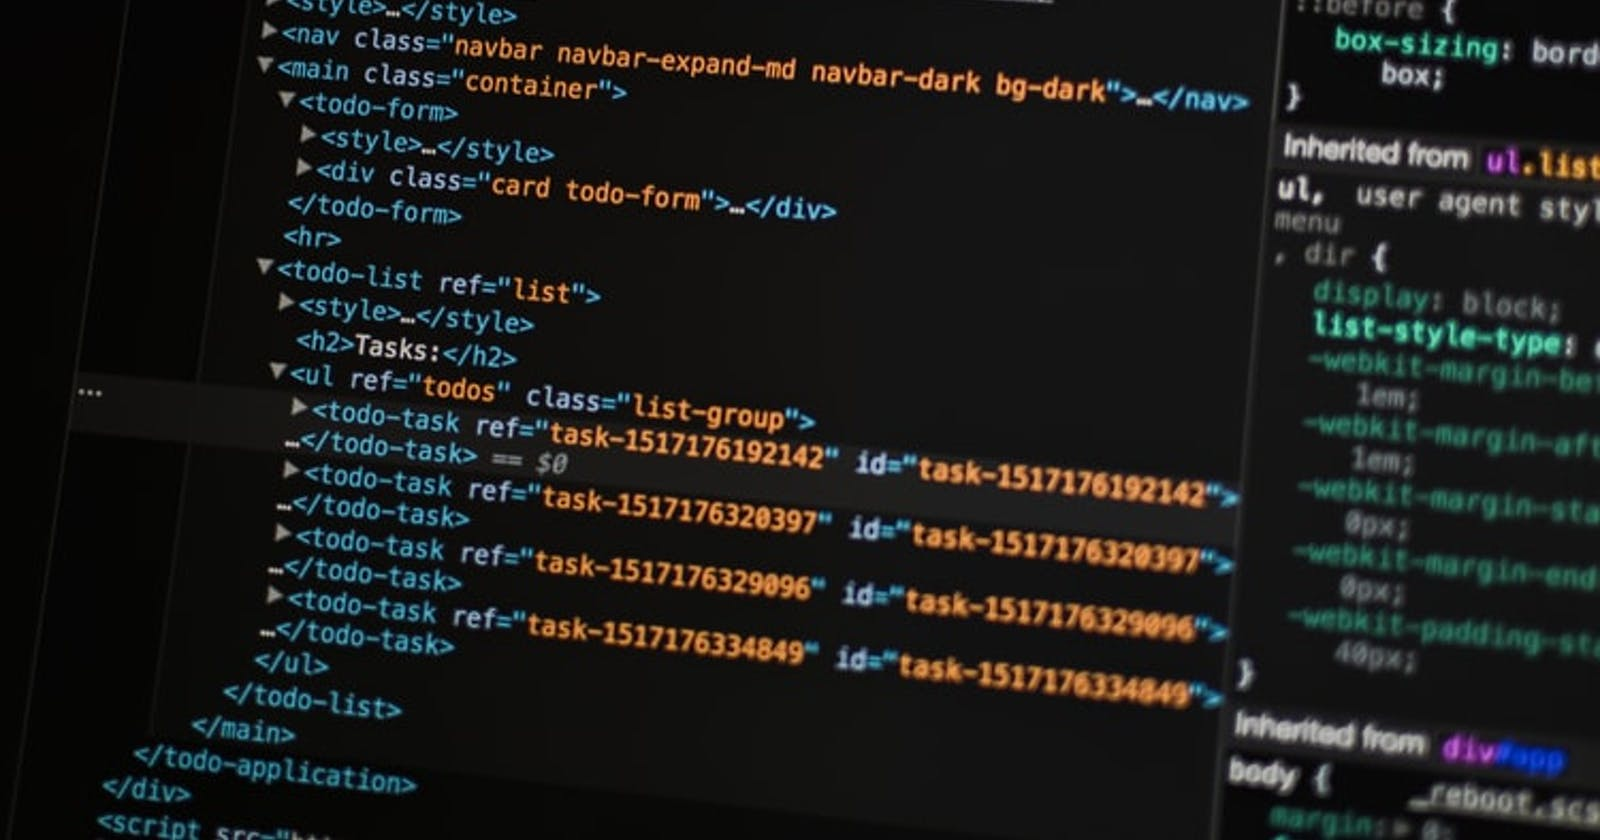 7 Awesome Ways to Screenshot Your Code